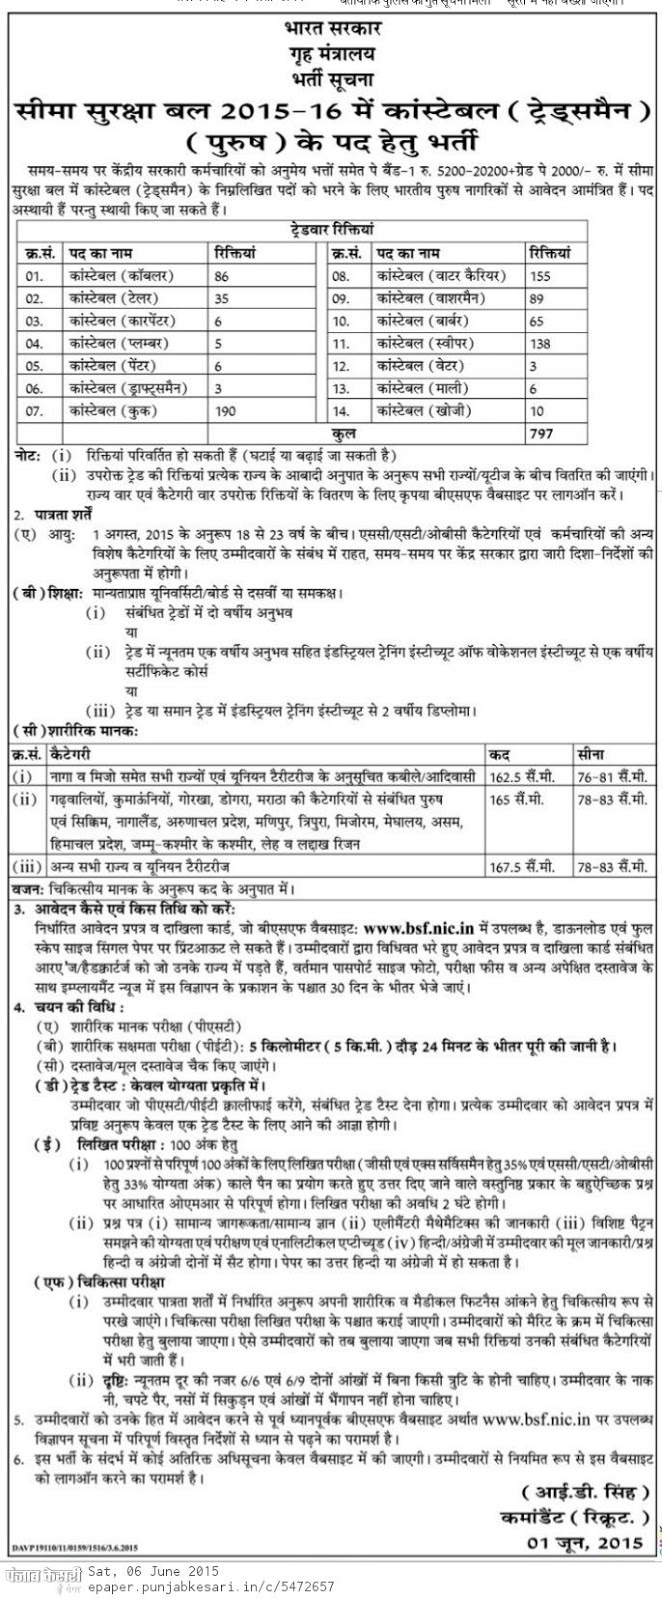 BSF 797 Constable Tradesman Recruitment 2015-16 www.bsf.nic ... Bsf Tradesman Application Form Pdf on application form word document, out of order sign pdf, application form excel, application form design, application form print, birth certificate pdf, fill out application pdf, costco application pdf, blank employment application pdf, application form online, application form graphics, financial statement pdf,